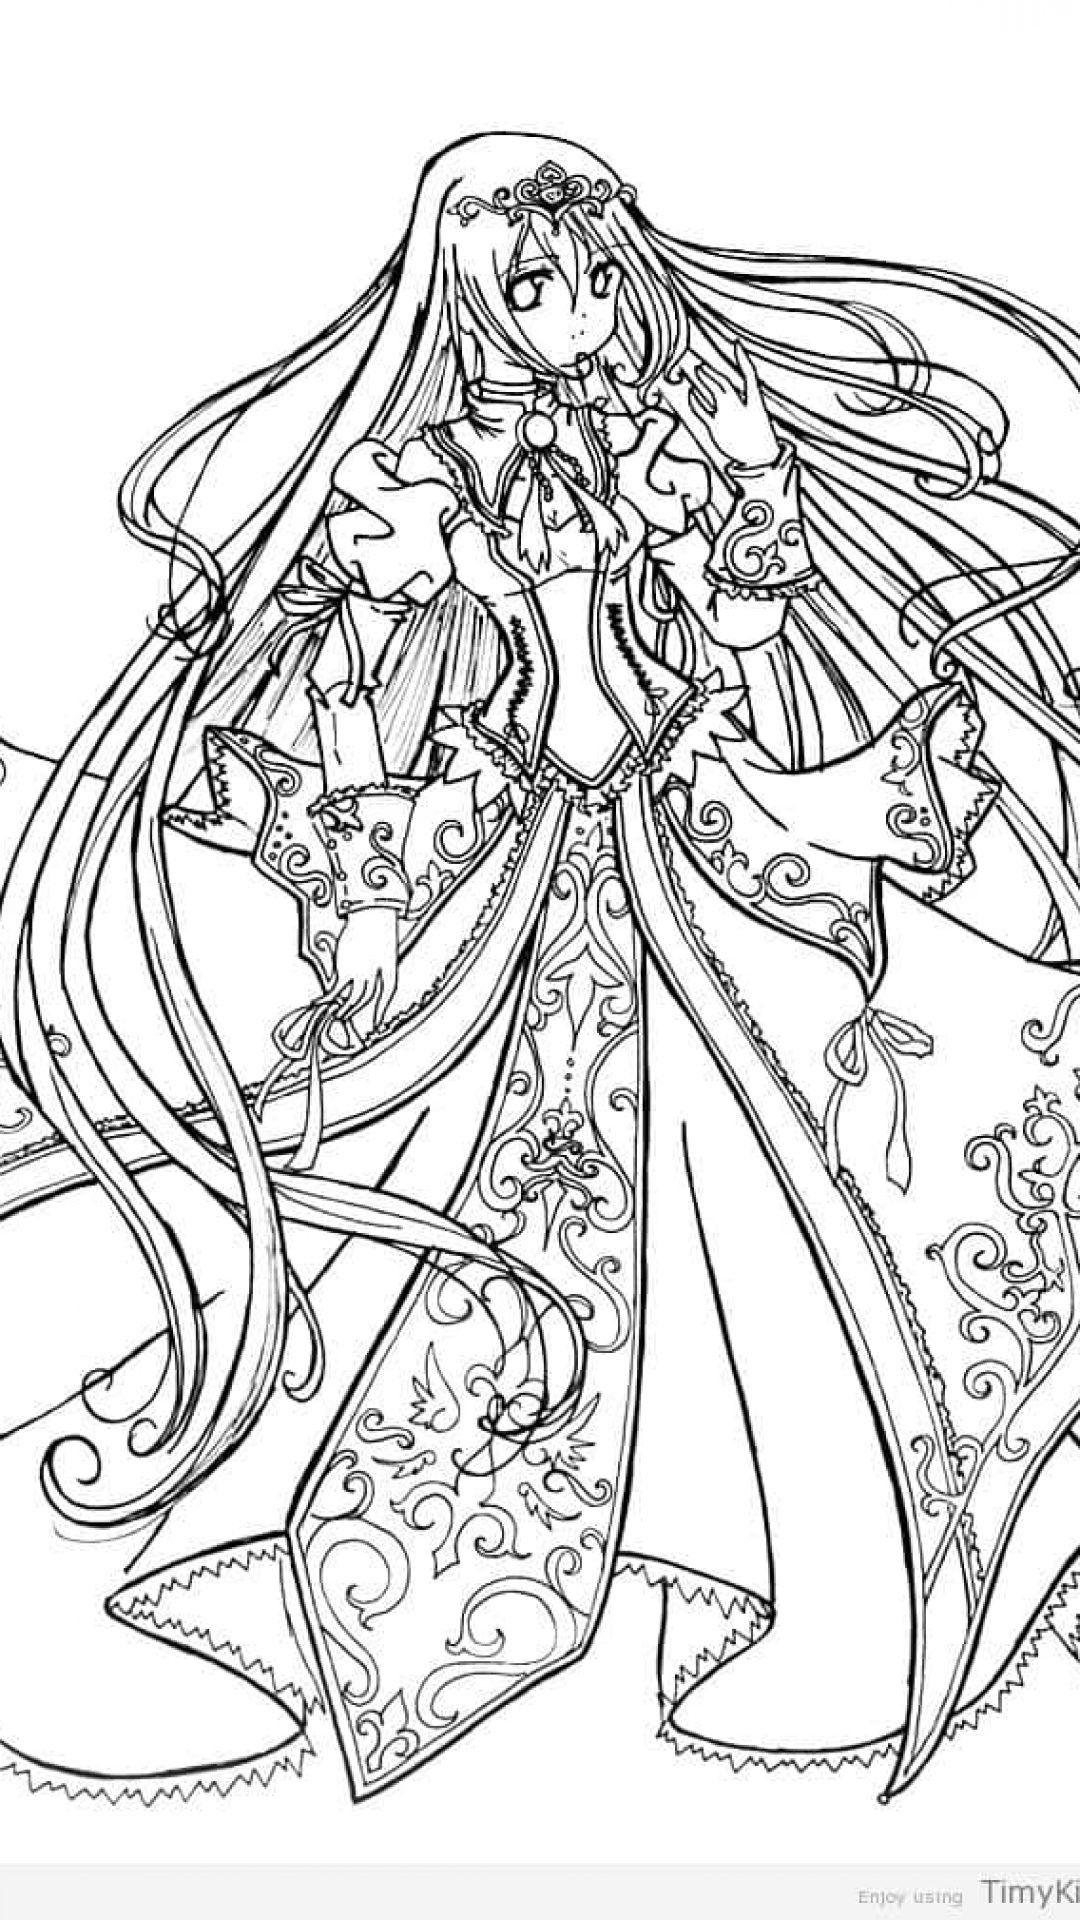 6000 Top All Anime Coloring Pages , Free HD Download